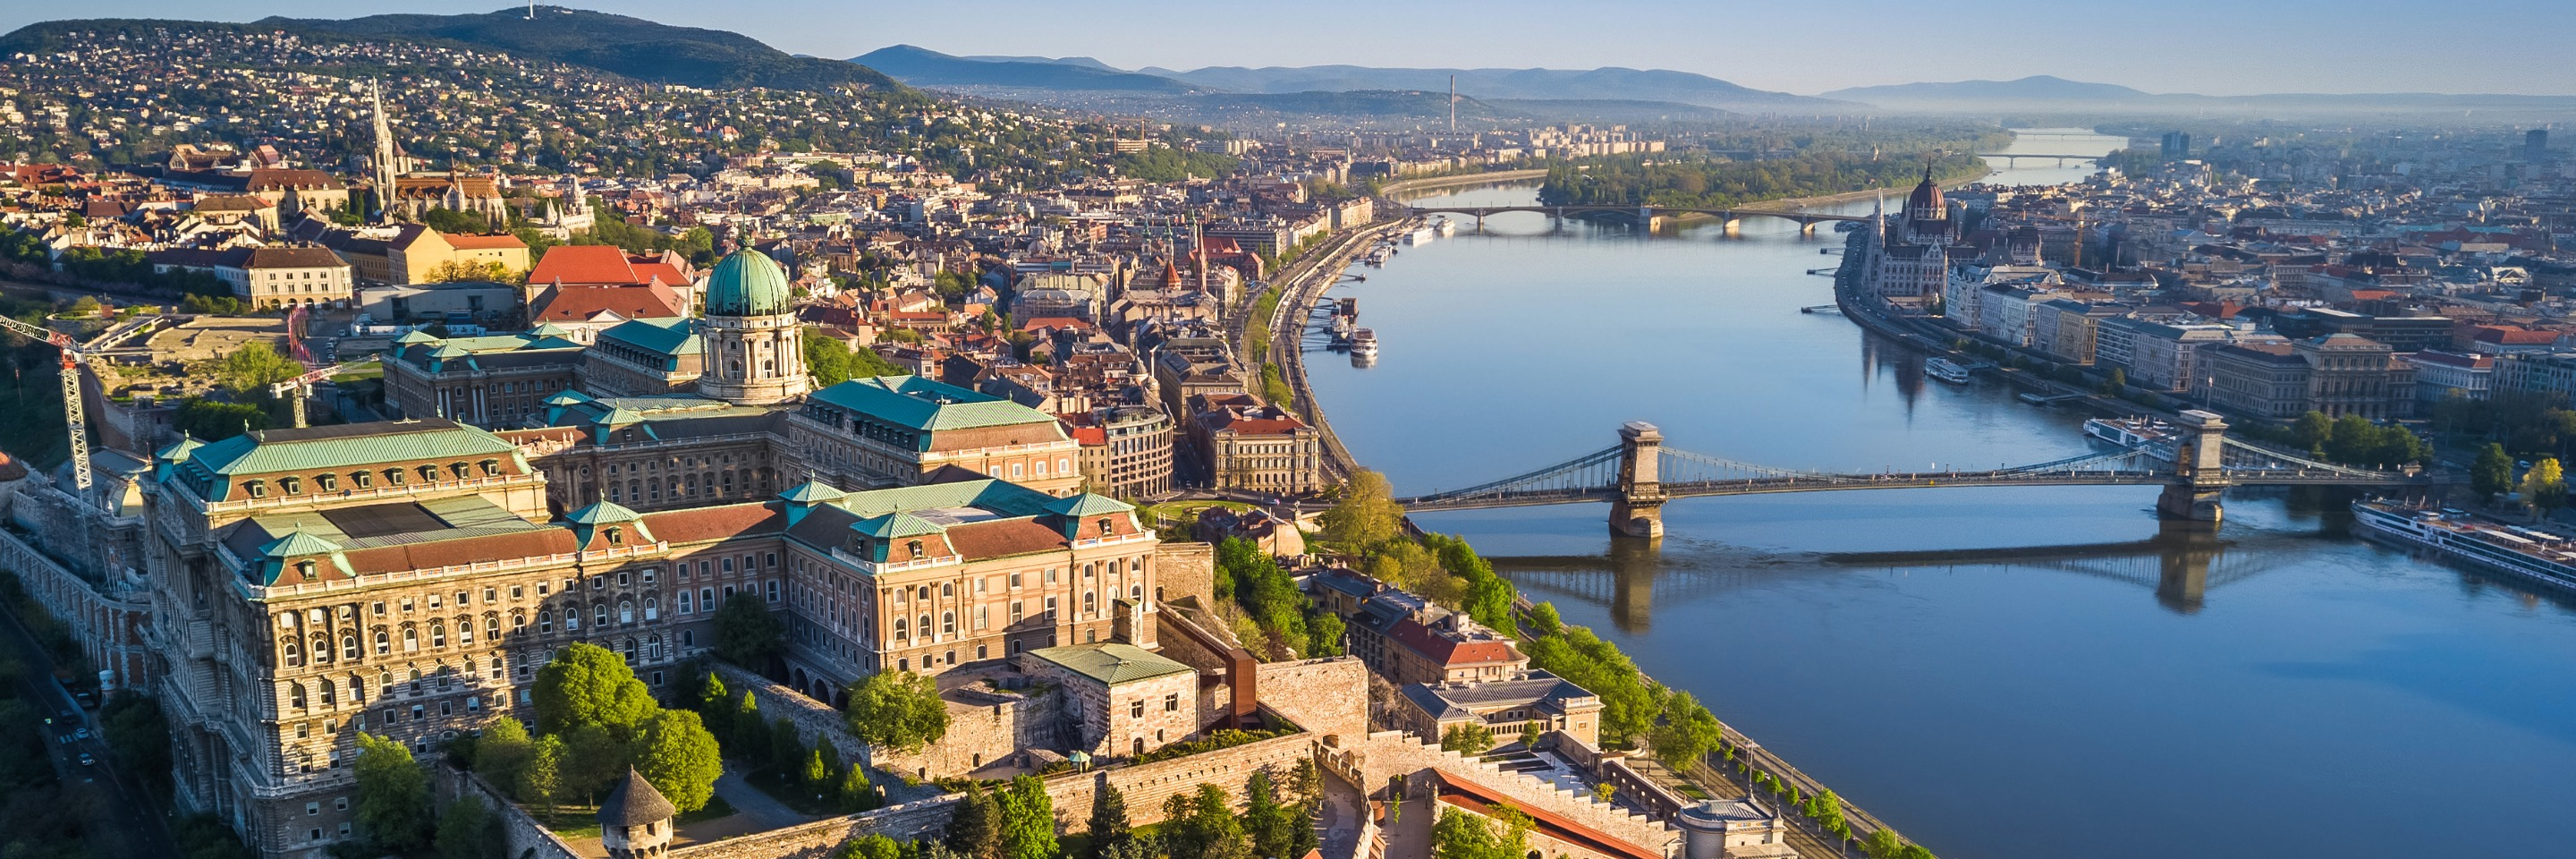 Enchanted Europe 2 Nights in Budapest and 2 Nights in Lucerne for Beer Enthusiasts (Westbound)